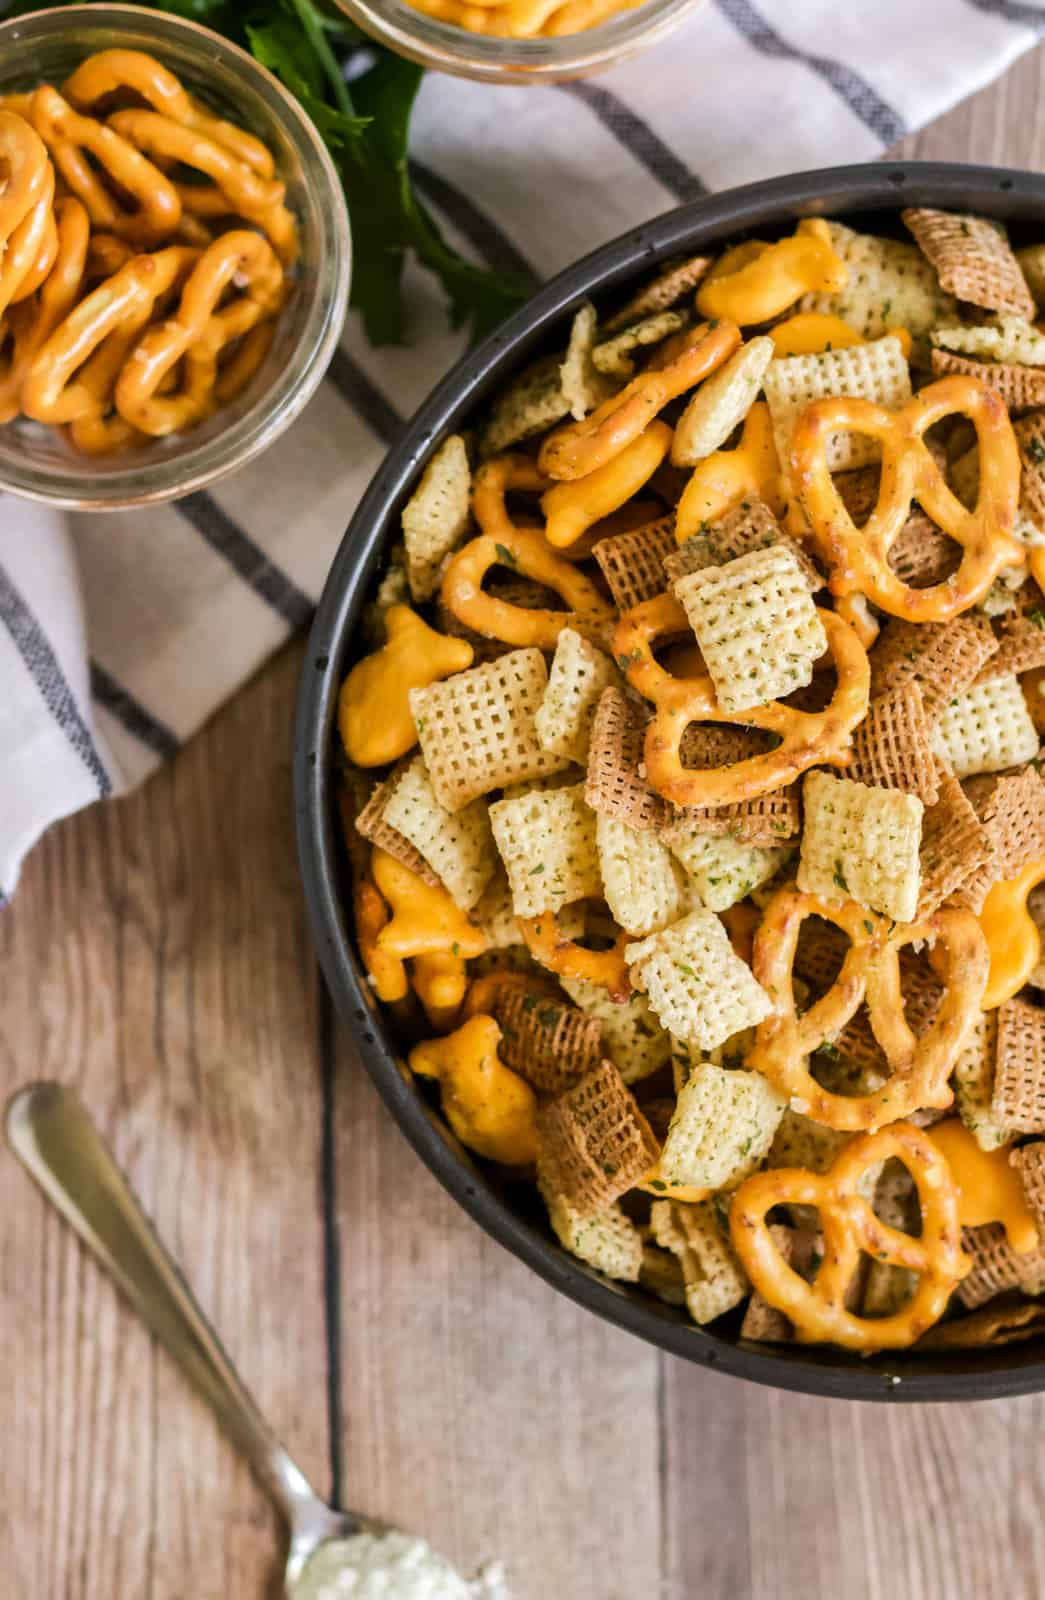 Overhead side view of Chex mix in bowl